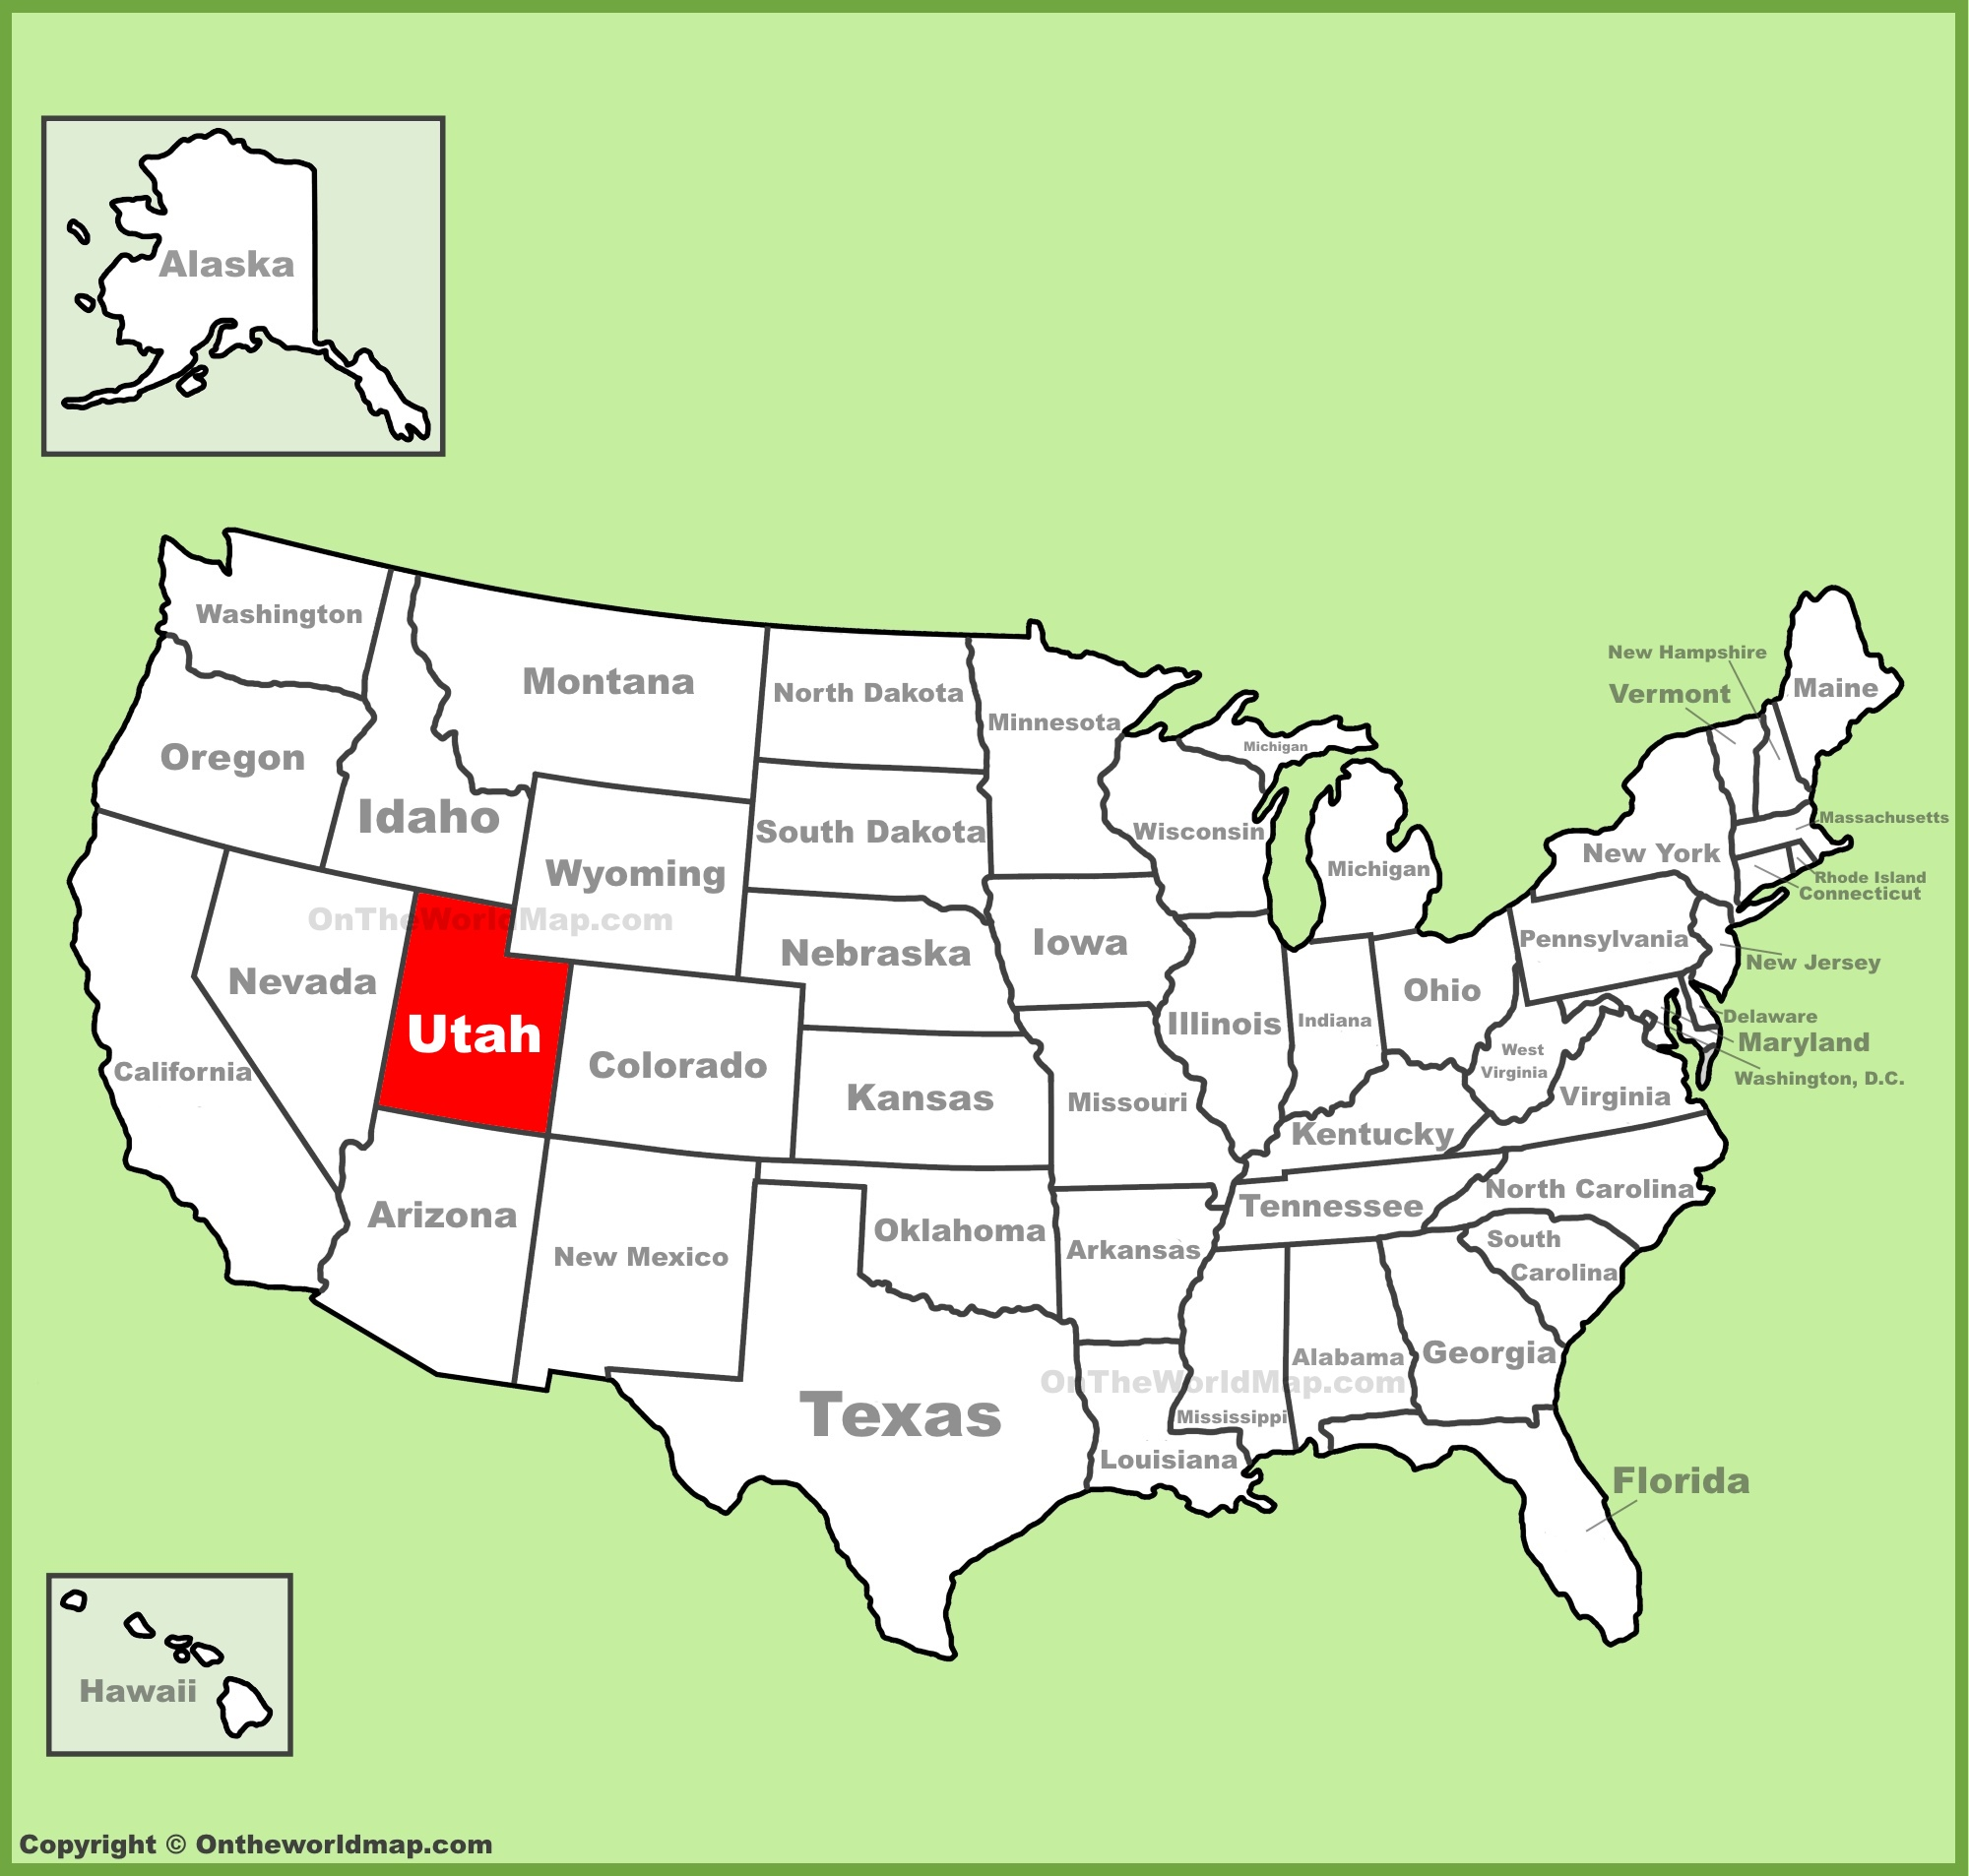 Utah State Maps | USA | Maps of Utah (UT) on give me a map of oklahoma, full map of oklahoma, show me a map texas, show me a state map, map of cordell oklahoma, color me map of oklahoma, large map of oklahoma, porum landing oklahoma, geographical map of oklahoma, pdf map of oklahoma, show map of oklahoma towns, detailed map of oklahoma, google maps oklahoma, poltical map of oklahoma, show map of texas, complete map of oklahoma, physical map of oklahoma, printable road map of oklahoma, map of newkirk oklahoma, map of texas and oklahoma,